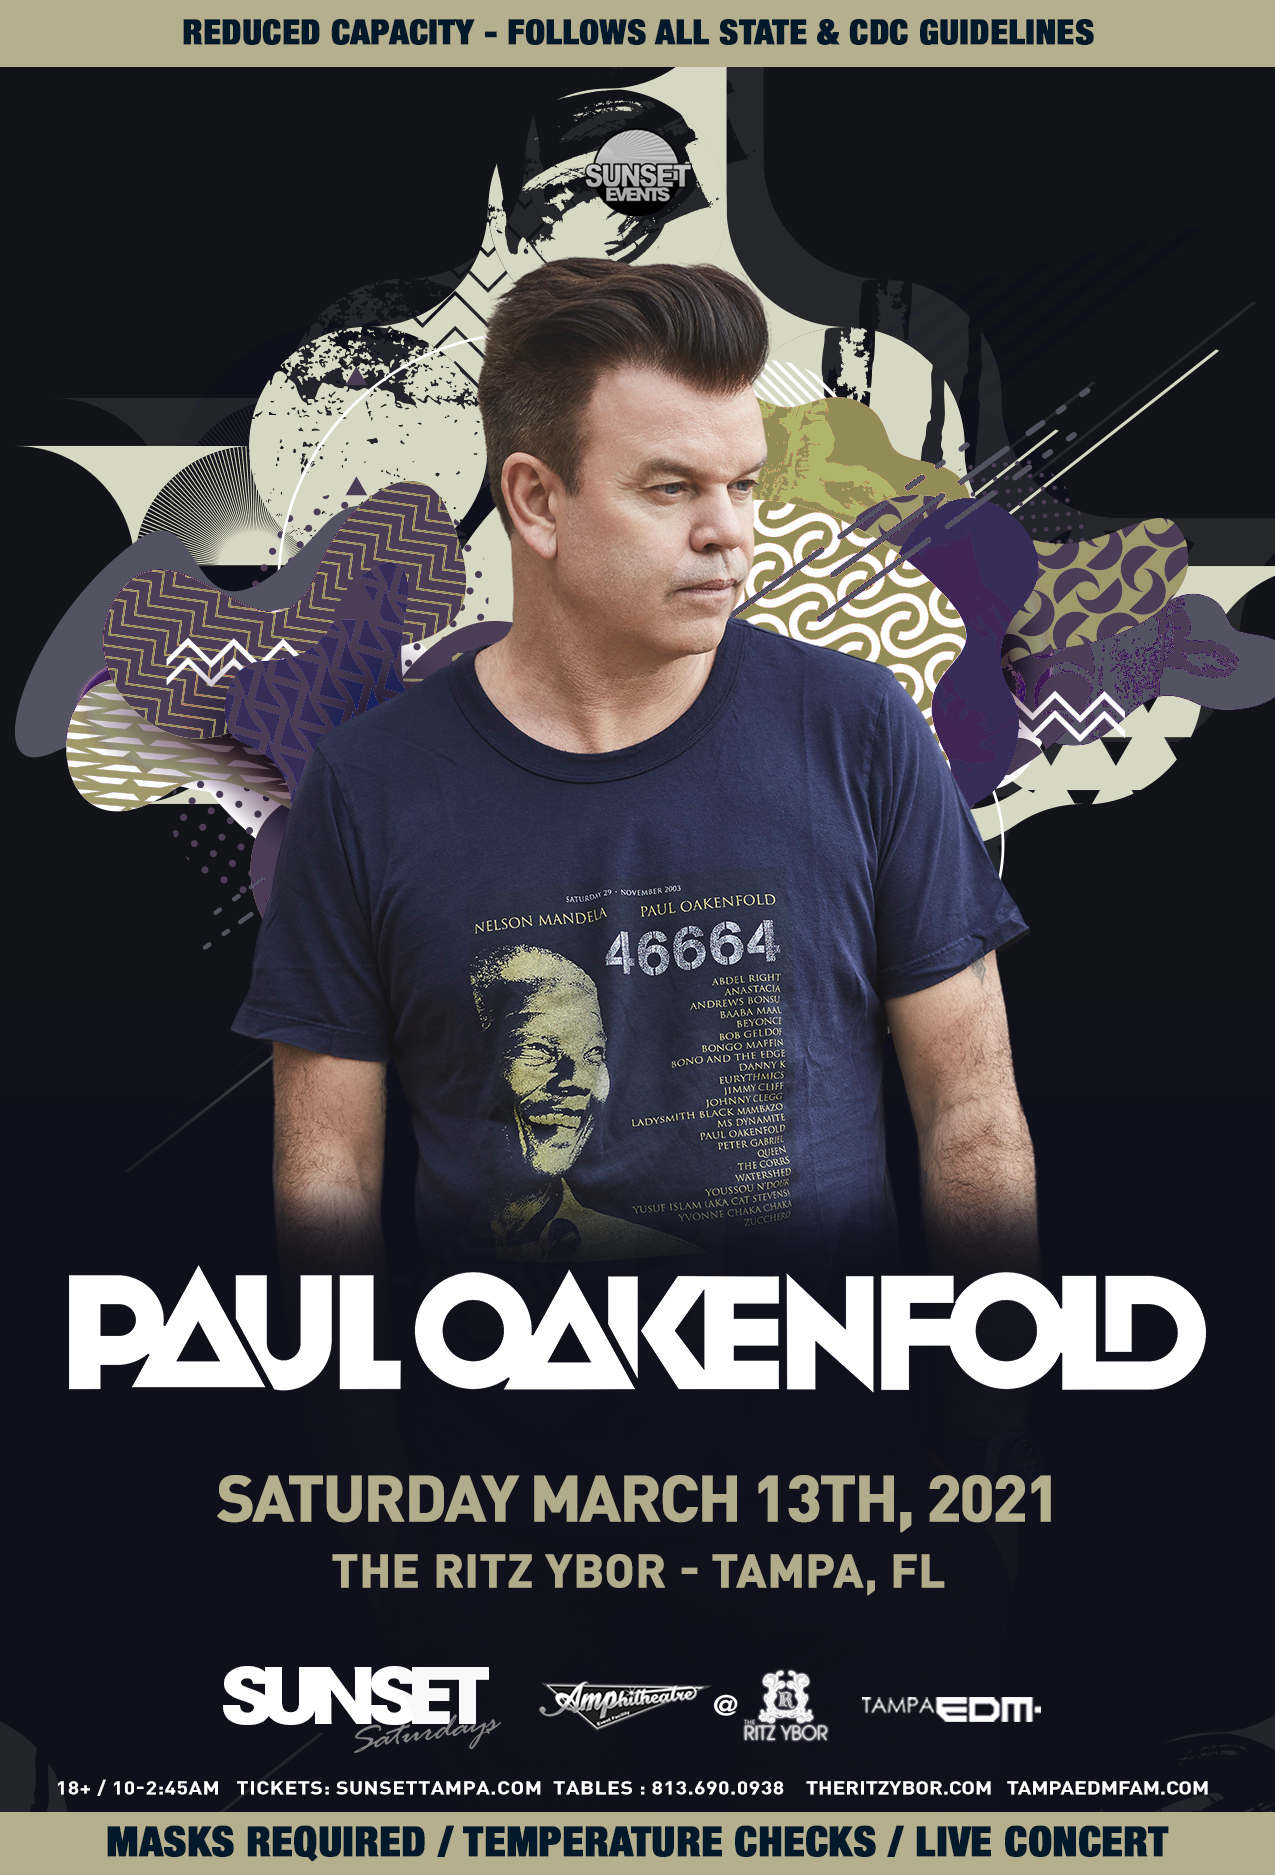 Paul Oakenfold for Sunset Saturdays at The RITZ Ybor – 3/13/2021